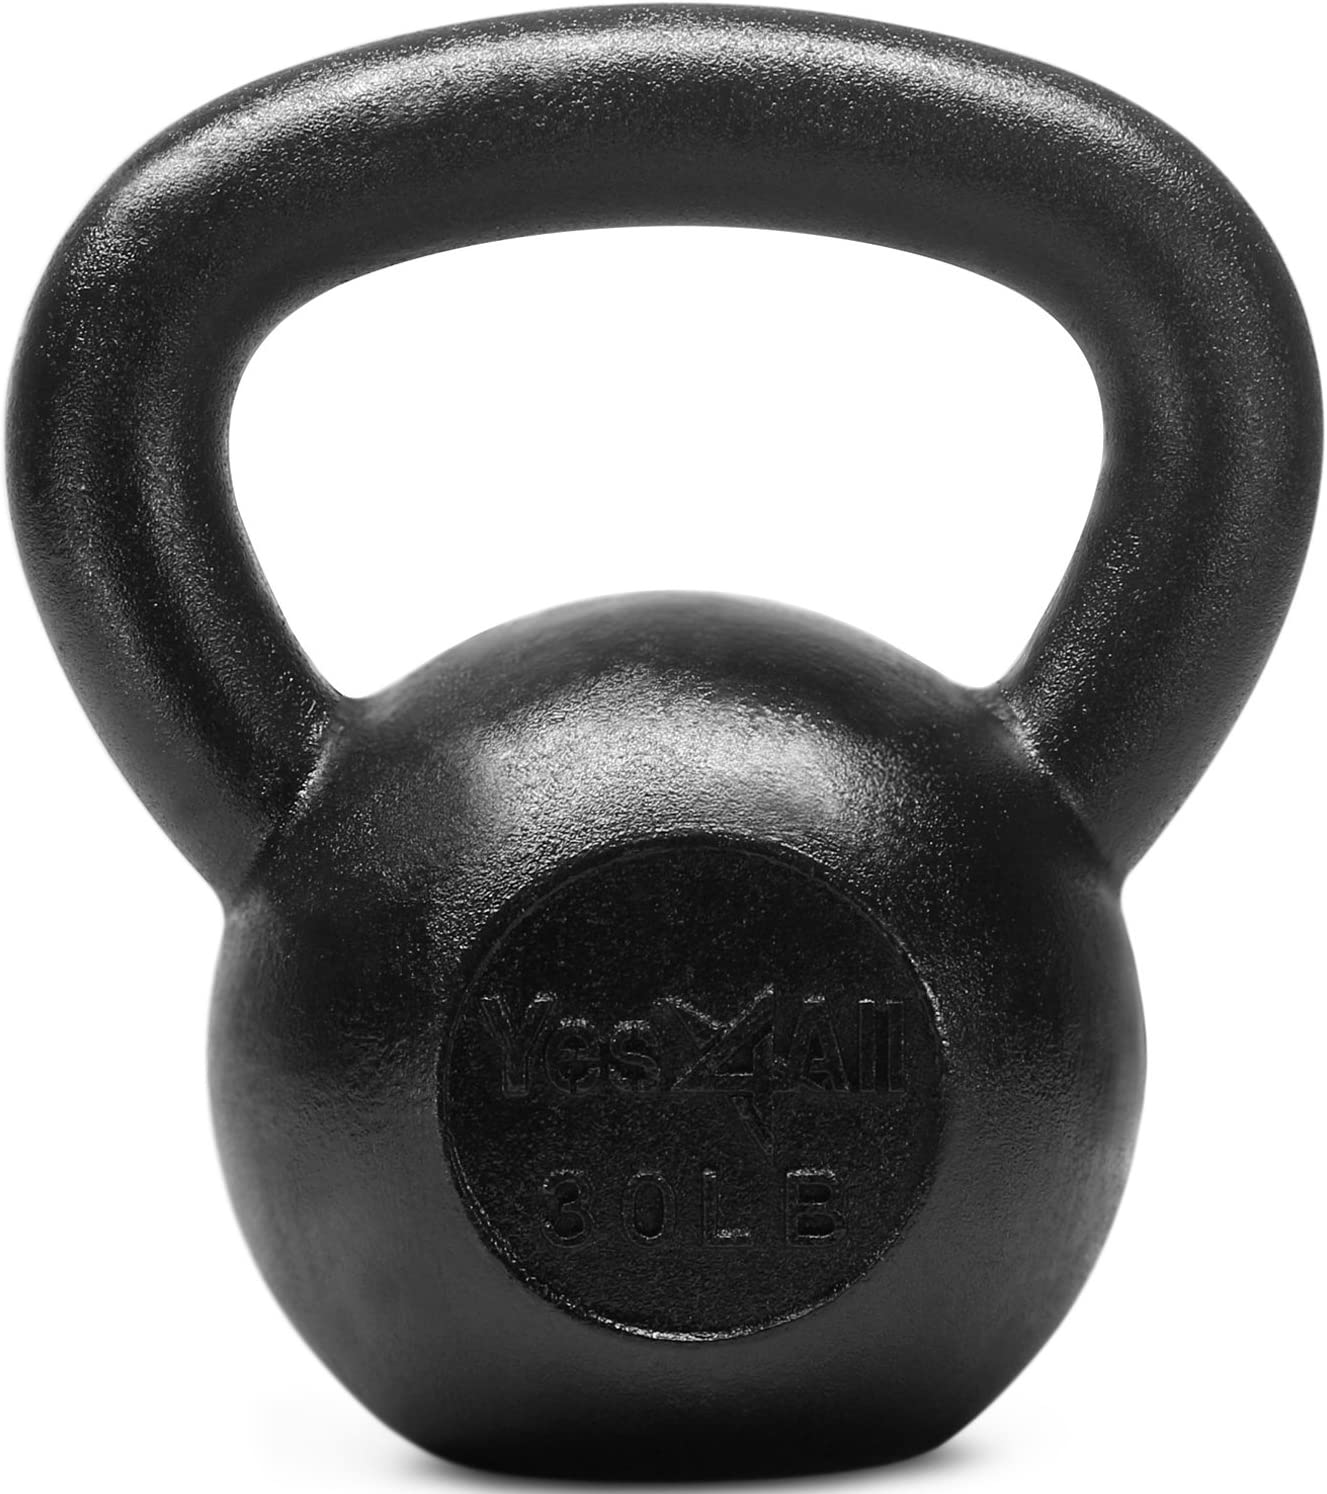 Yes4All Solid Cast Iron Kettlebell Weights Set Great for Full Body Workout and Strength Training